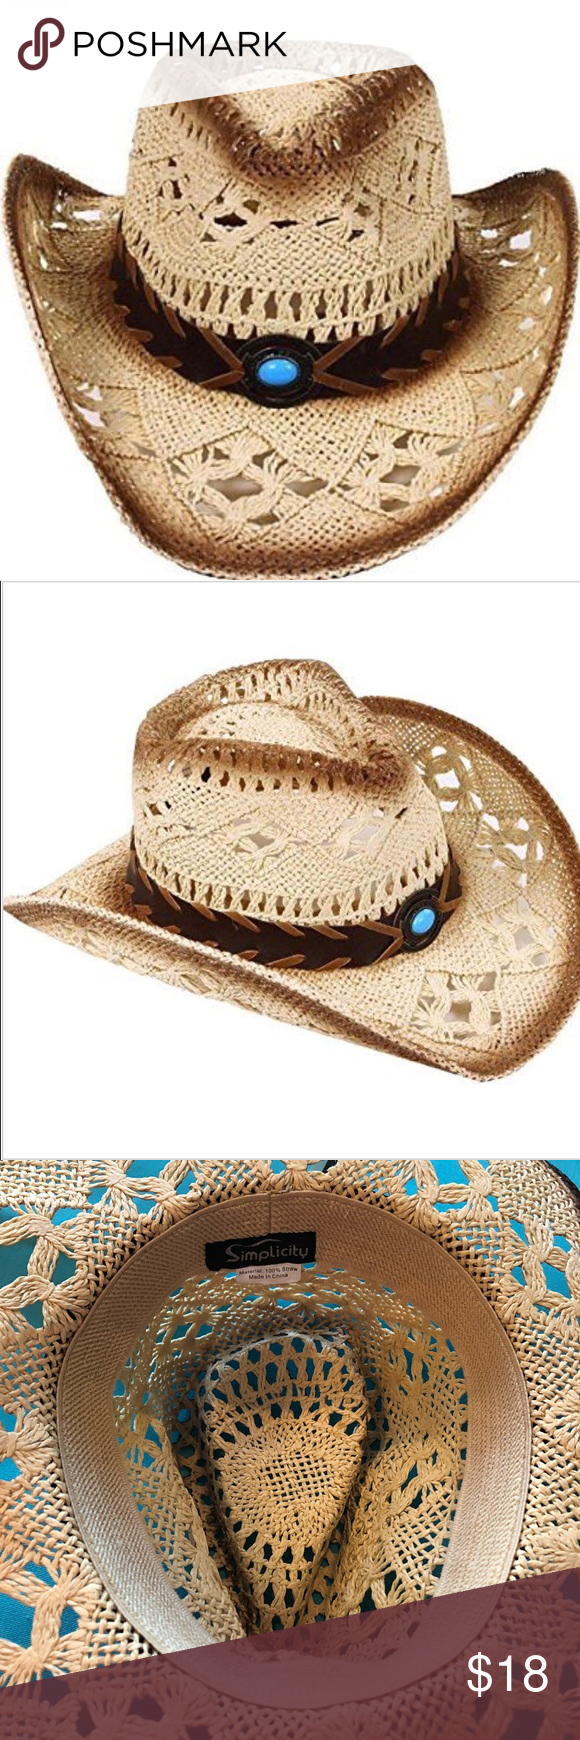 f6863a74845723 Western Country Cowboy Hat Leather Band Turquoise Simplicity Western  Country Style Cowboy Straw Hat Leather Band